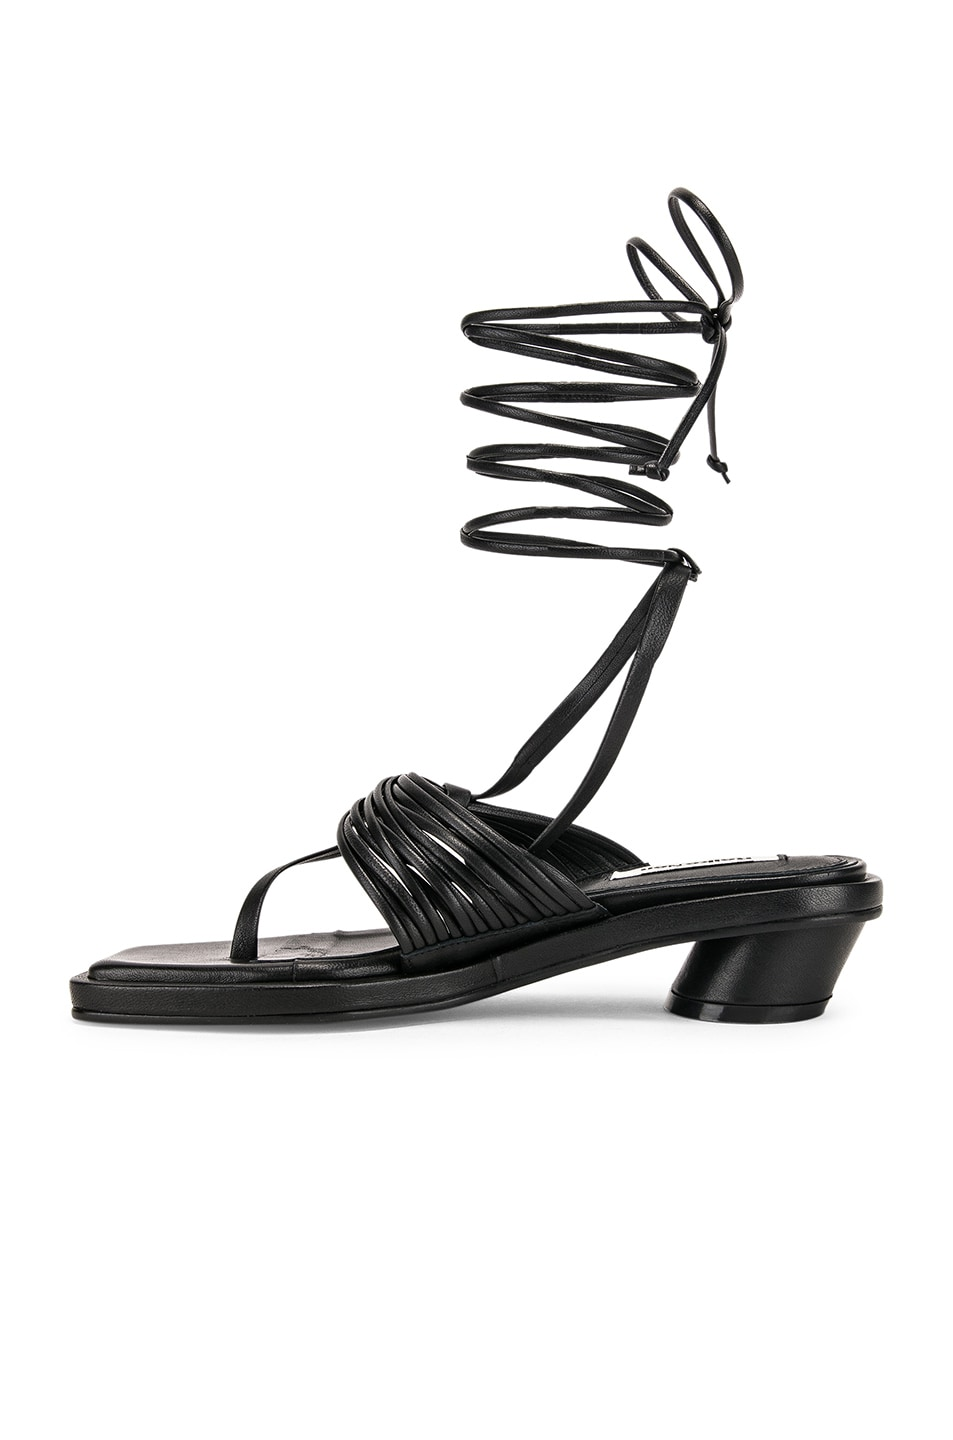 Image 5 of Reike Nen Unbalanced String Sandal in Black